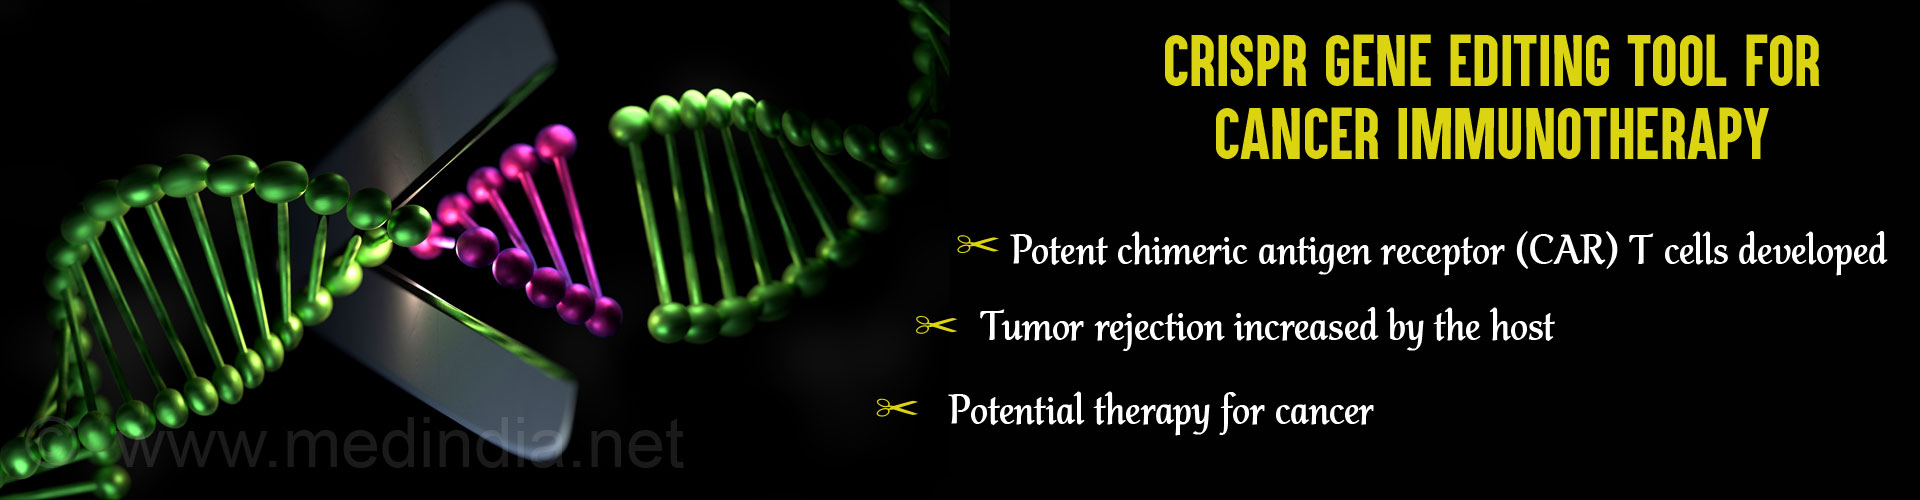 CRISPR/Cas9 System Used to Improve Immune Cell Defense Against Cancer